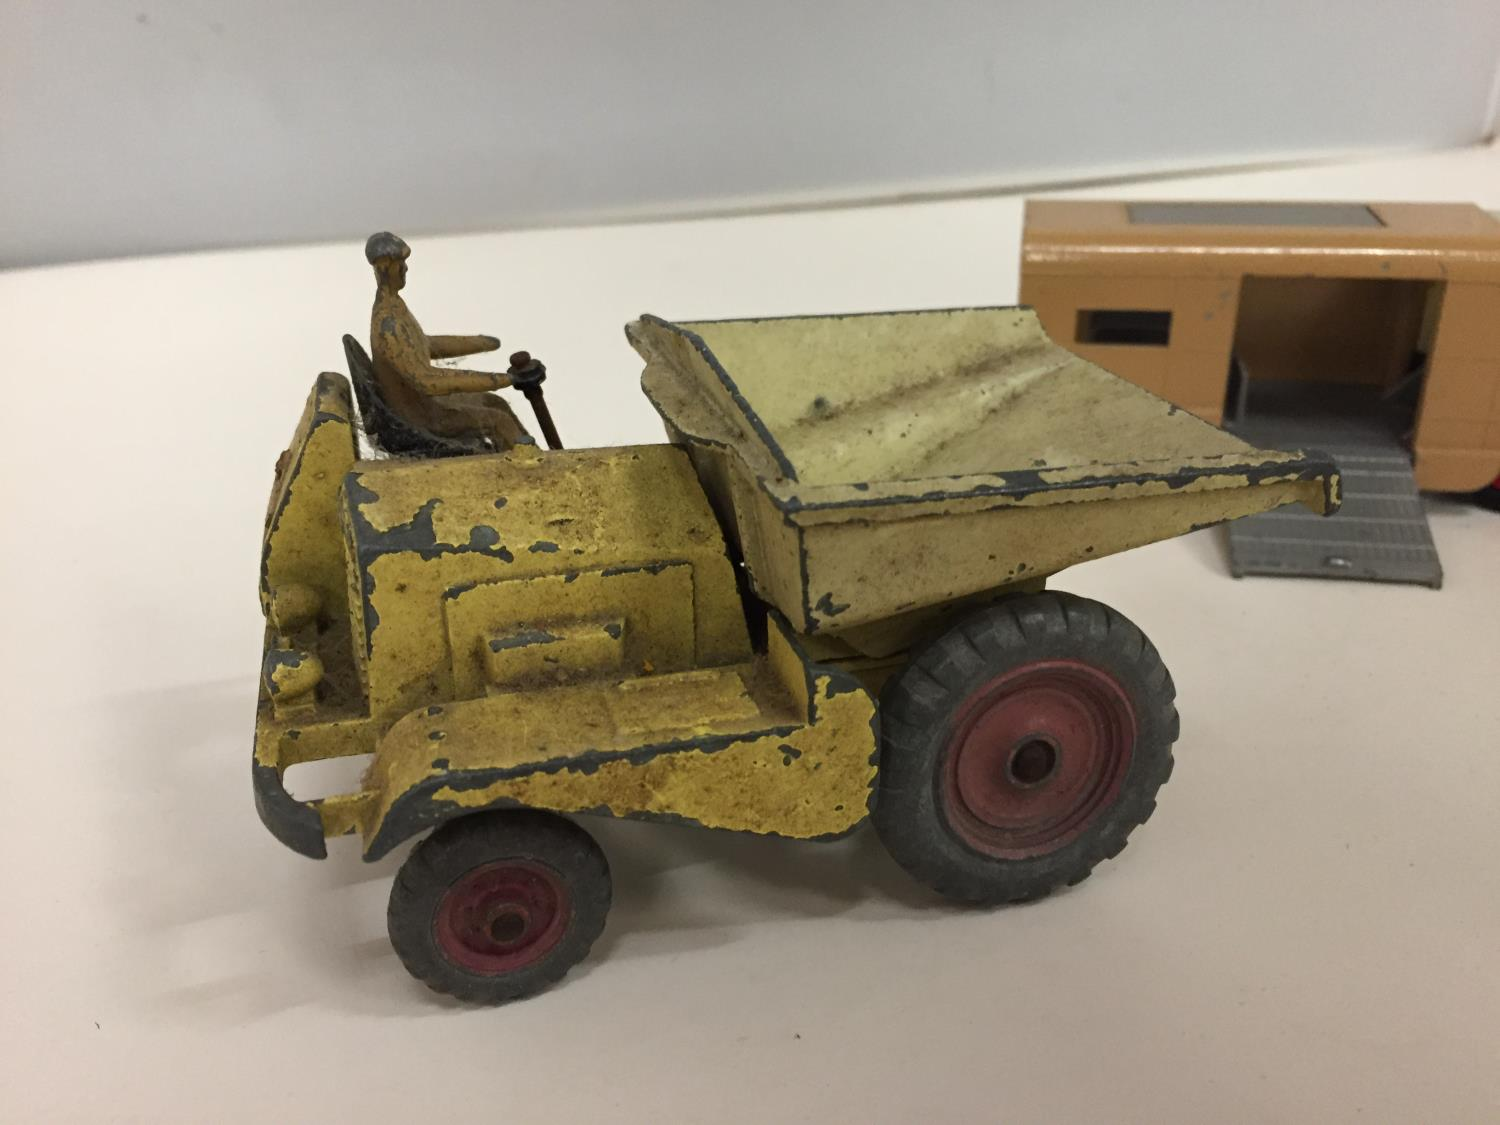 A DINKY MODEL MUIR-HILL DUMPER NO.562 1949-1954 AND A MATCH BOX KINGSIZE ARTICULATED HORSE VAN - Image 4 of 5